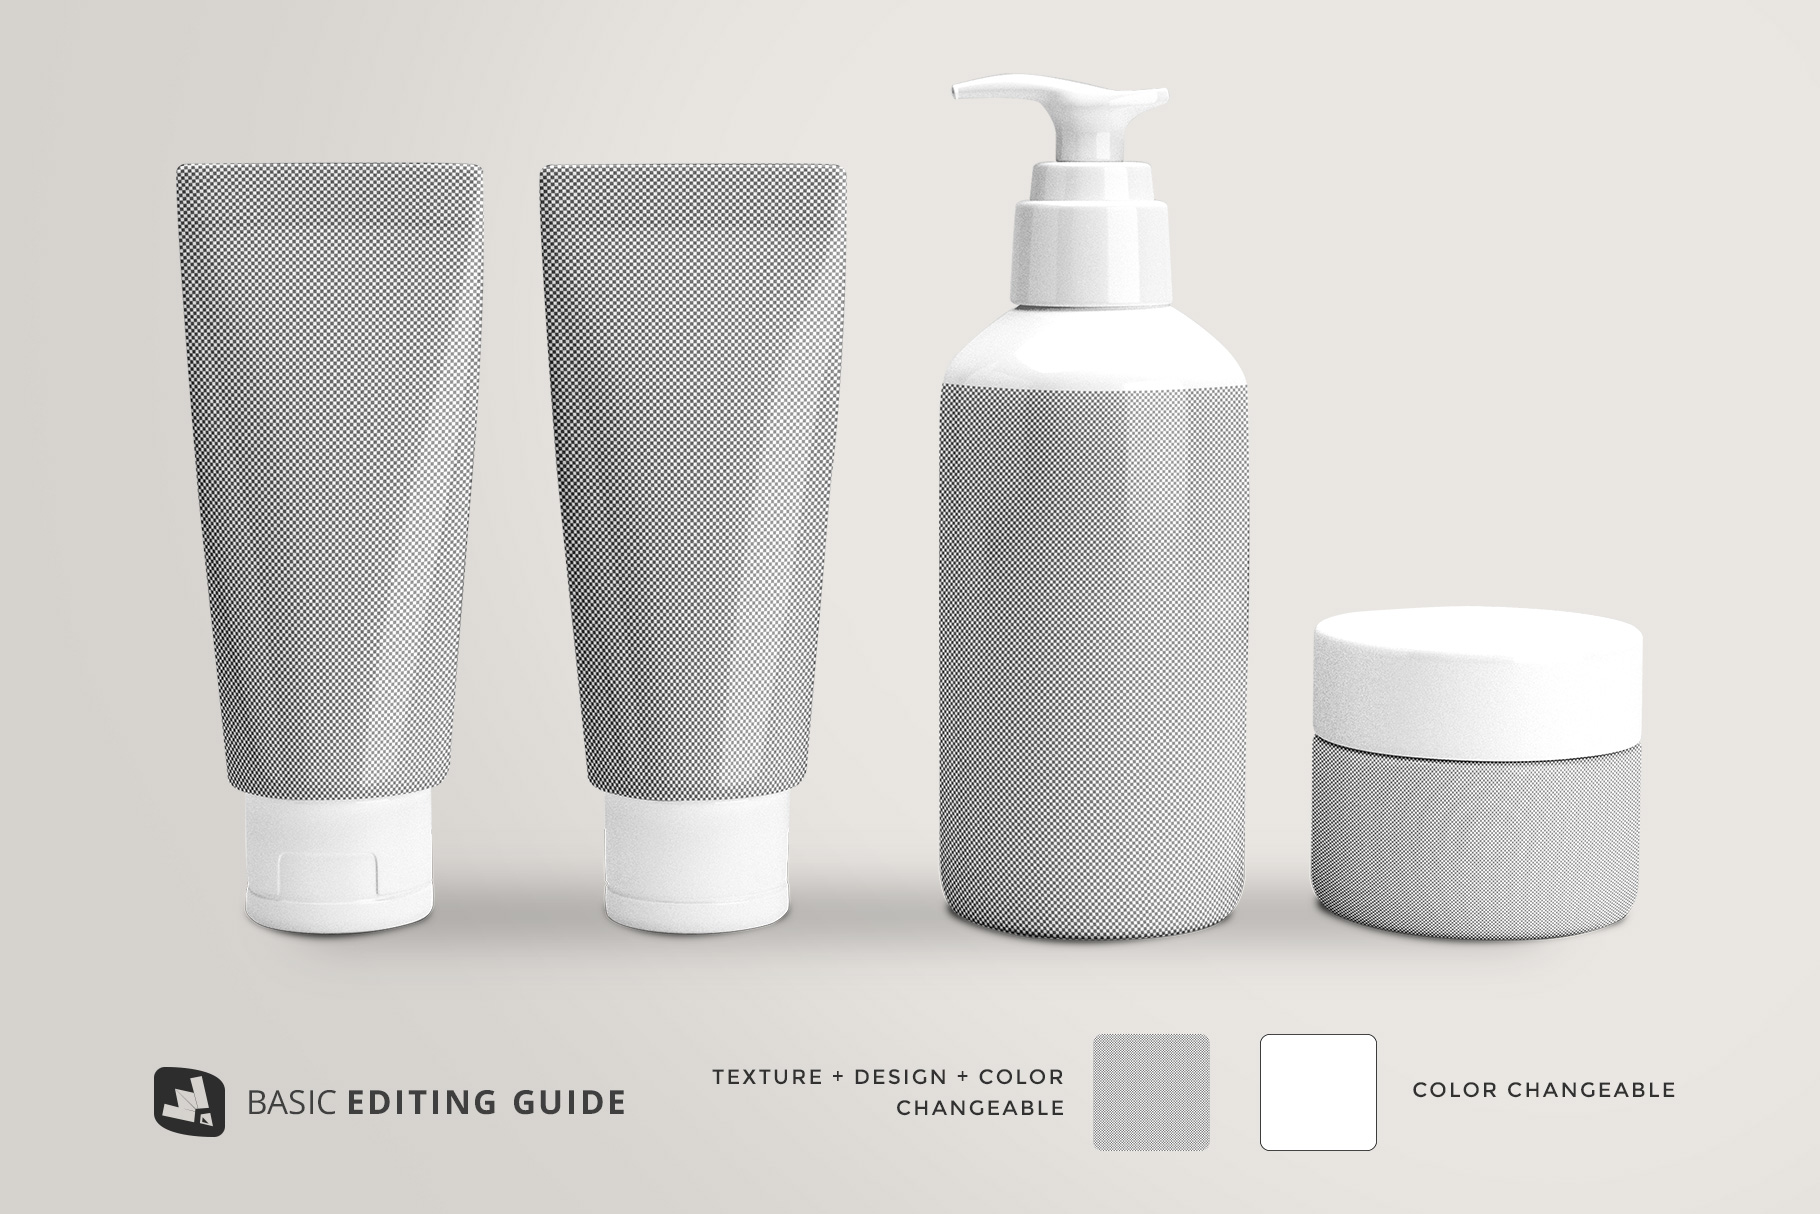 editability of the beauty product packaging set mockup